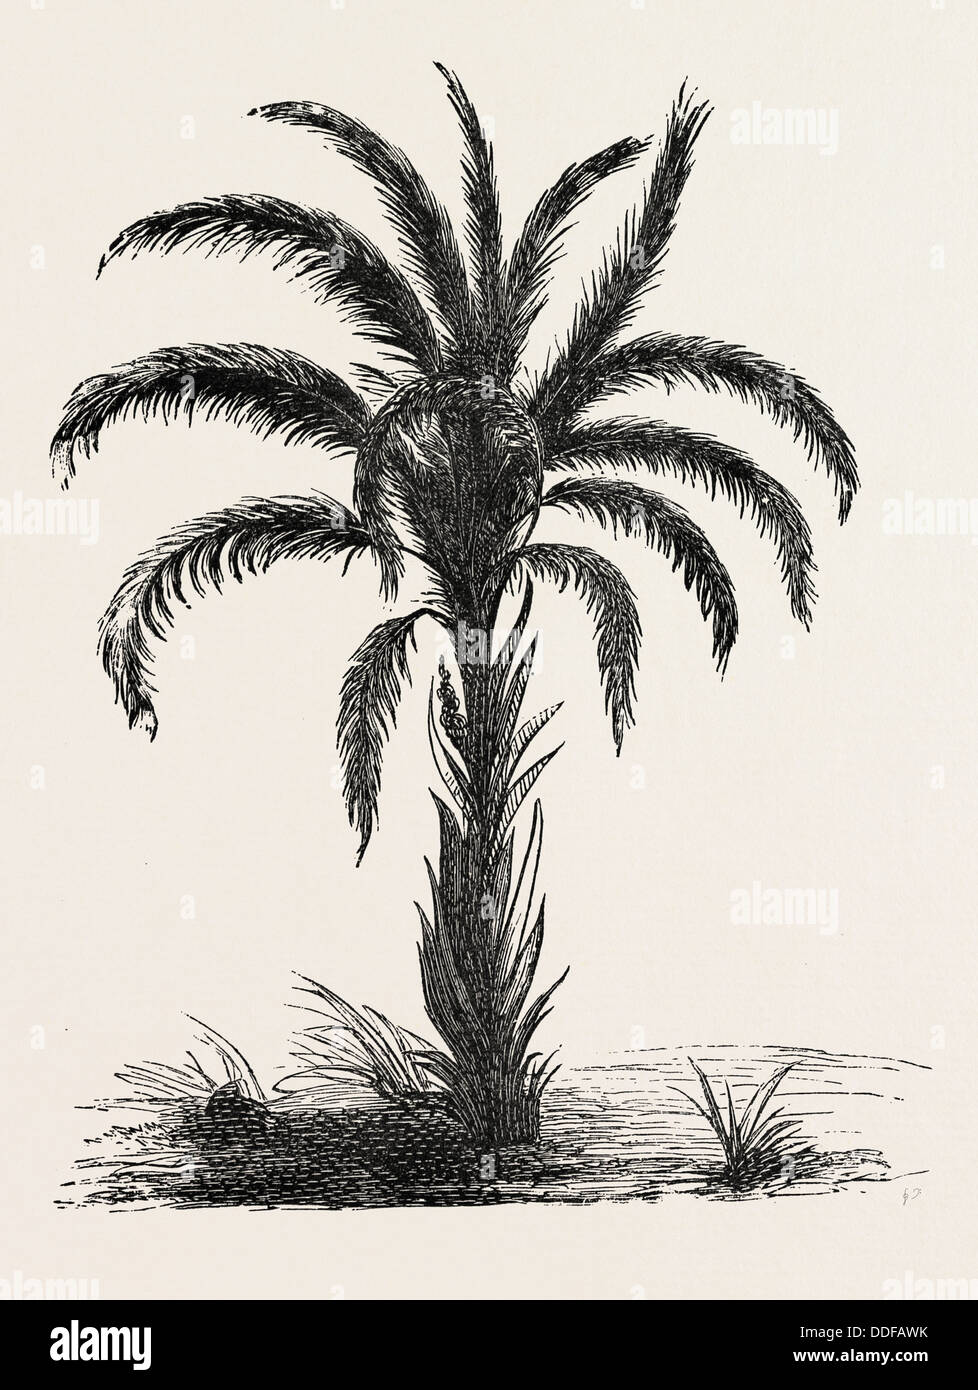 OIL-PALM (Eloeis Guineensis). Elaeis is a genus of palms containing two species, called oil palms. They are used - Stock Image